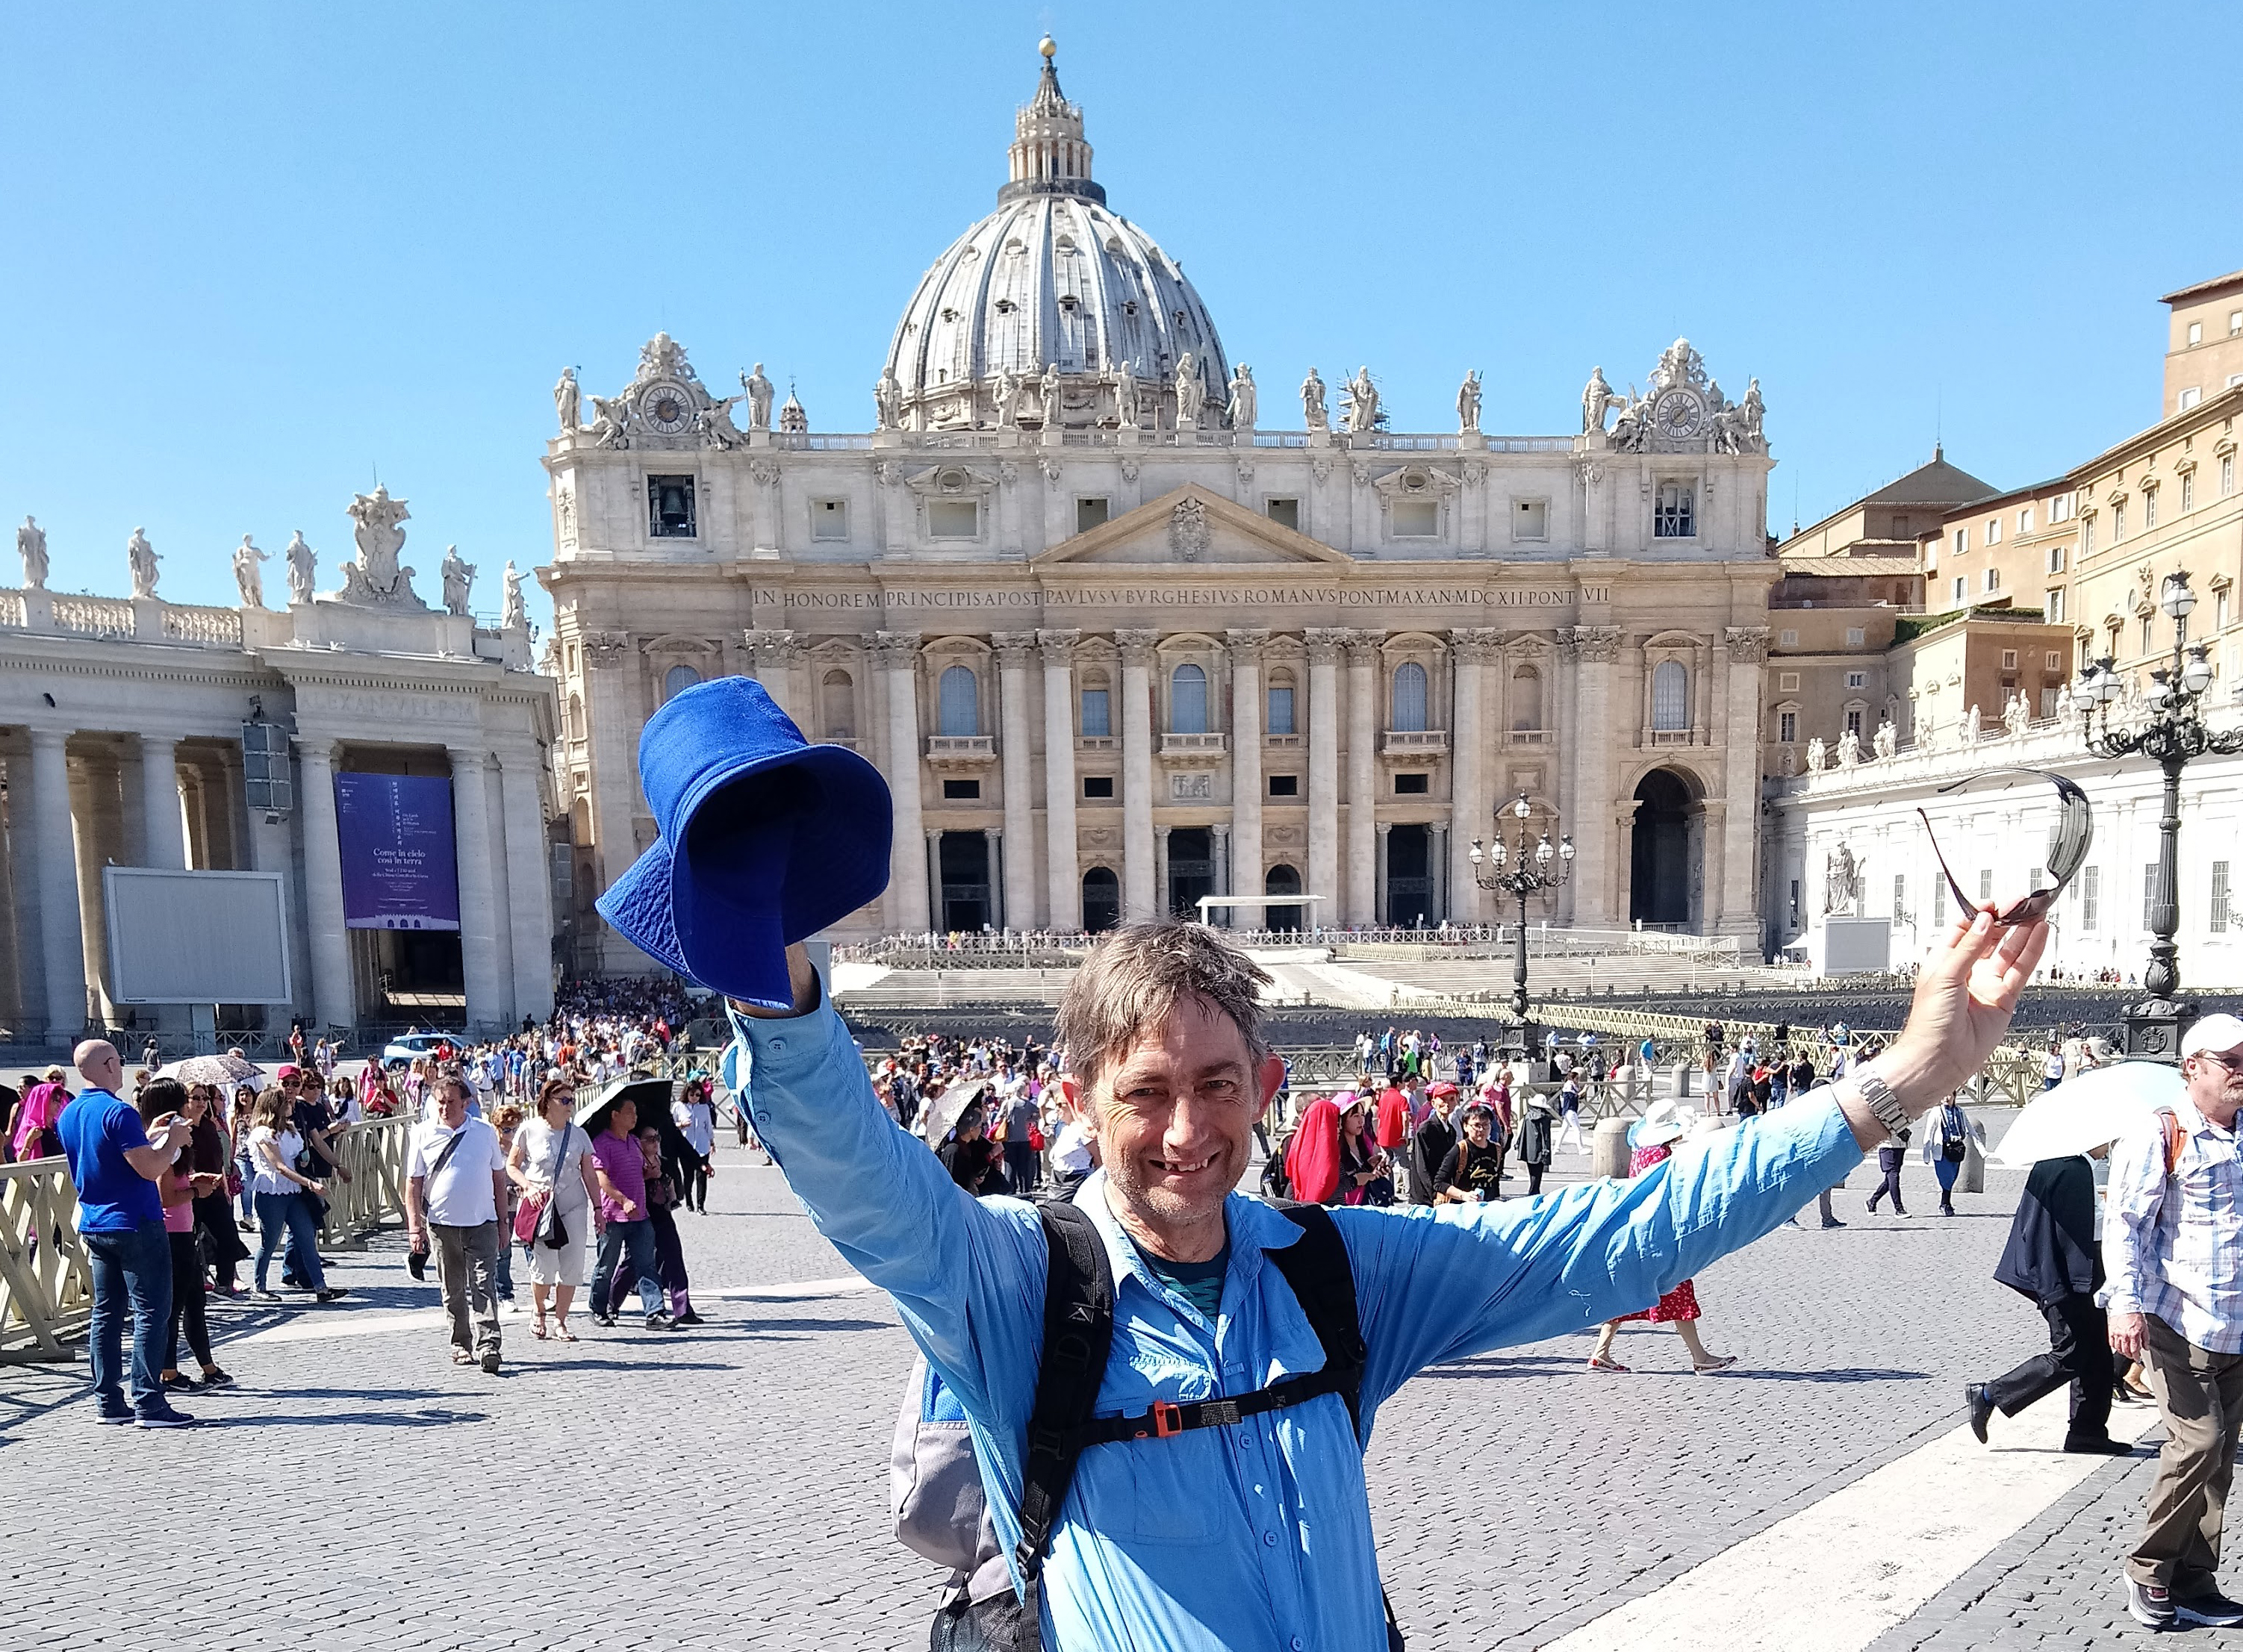 Arrival at St Peter's